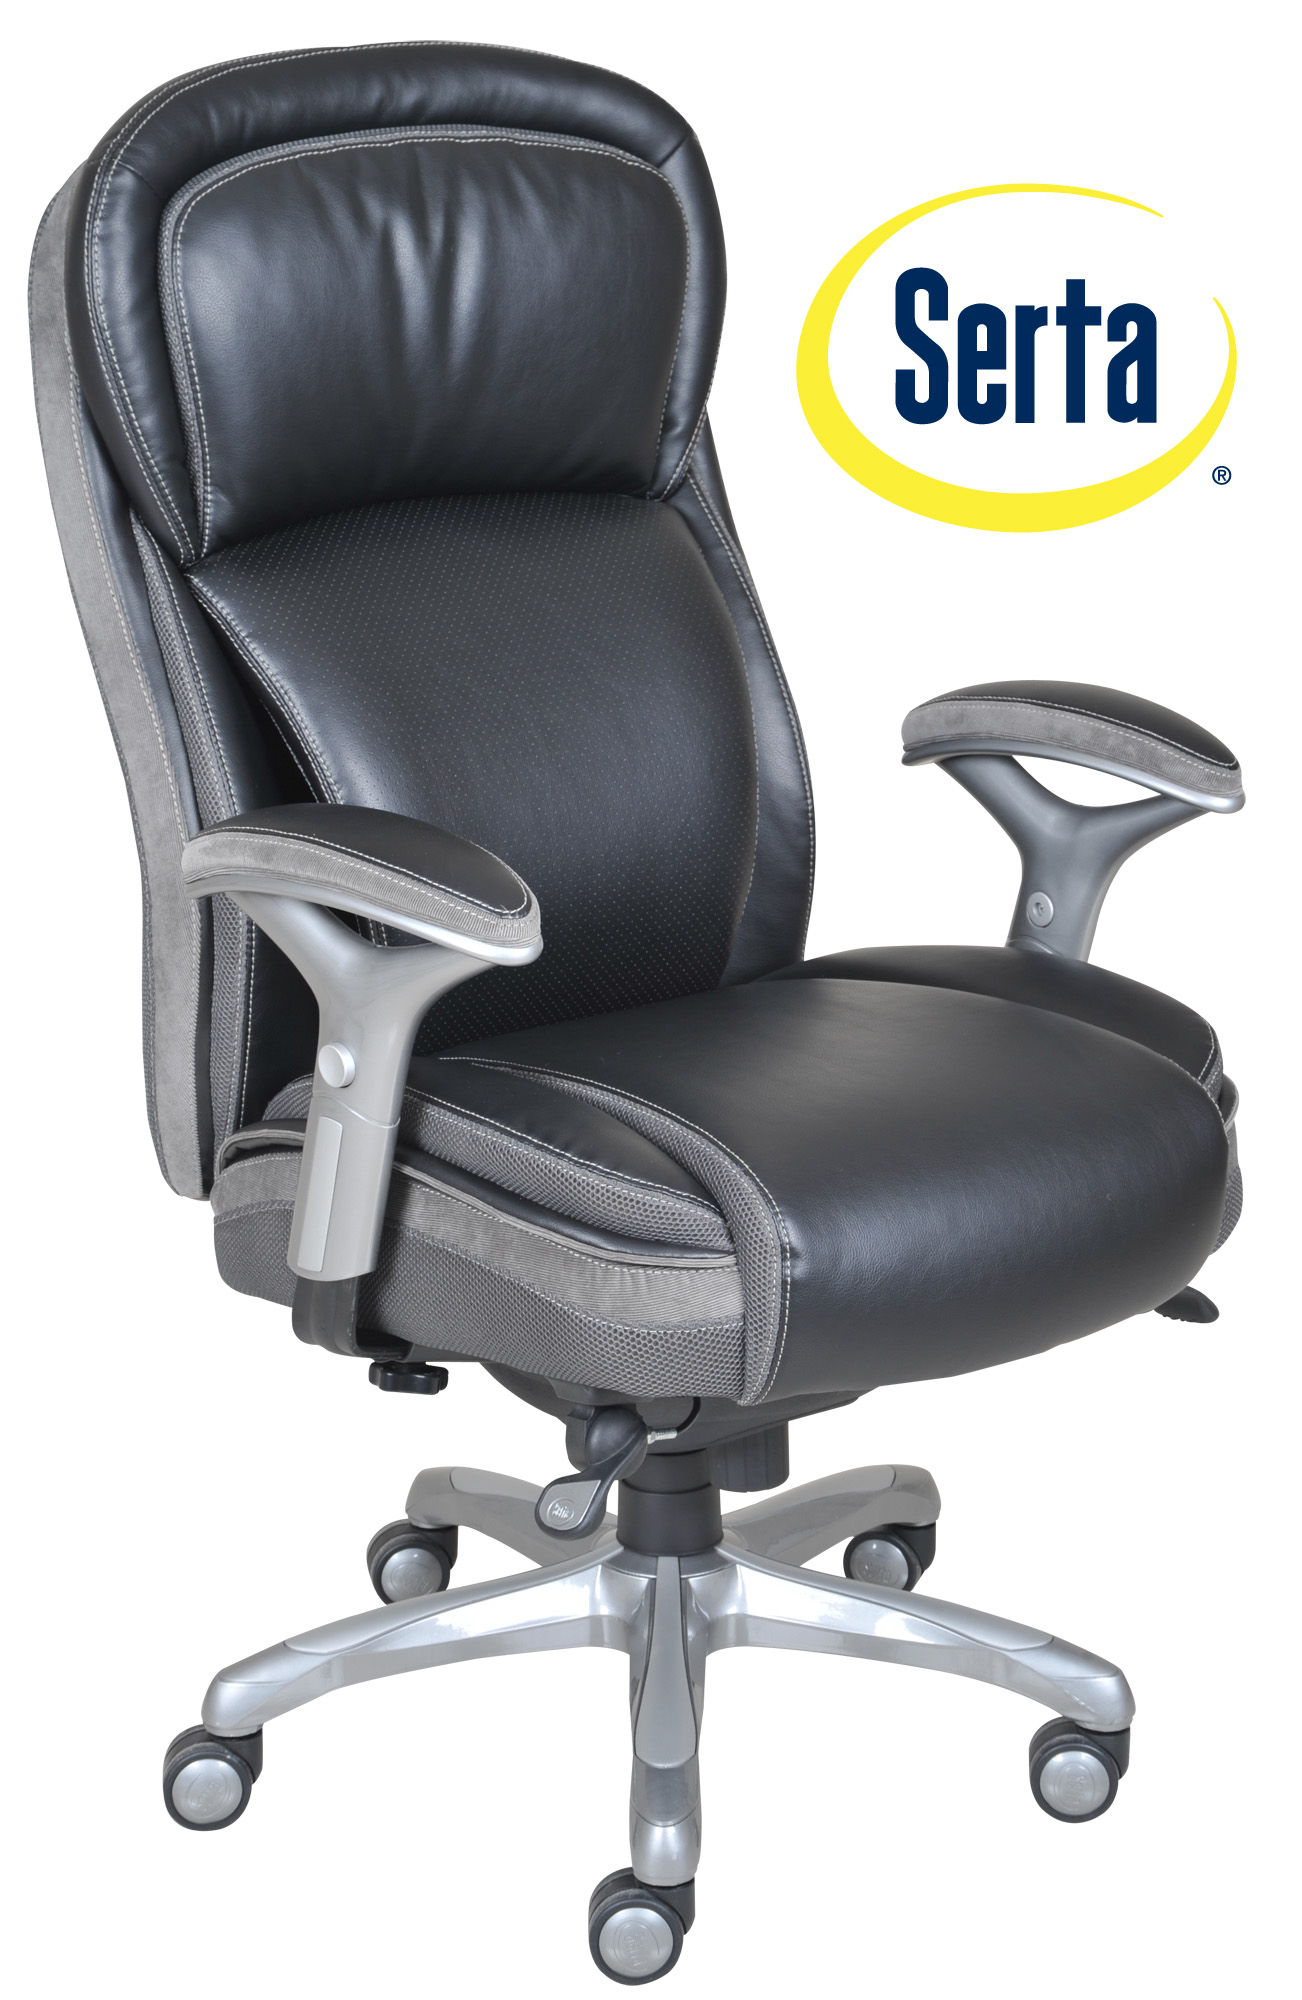 serta bonded leather executive chair boat seats captains chairs at home smart layers premium elite manager